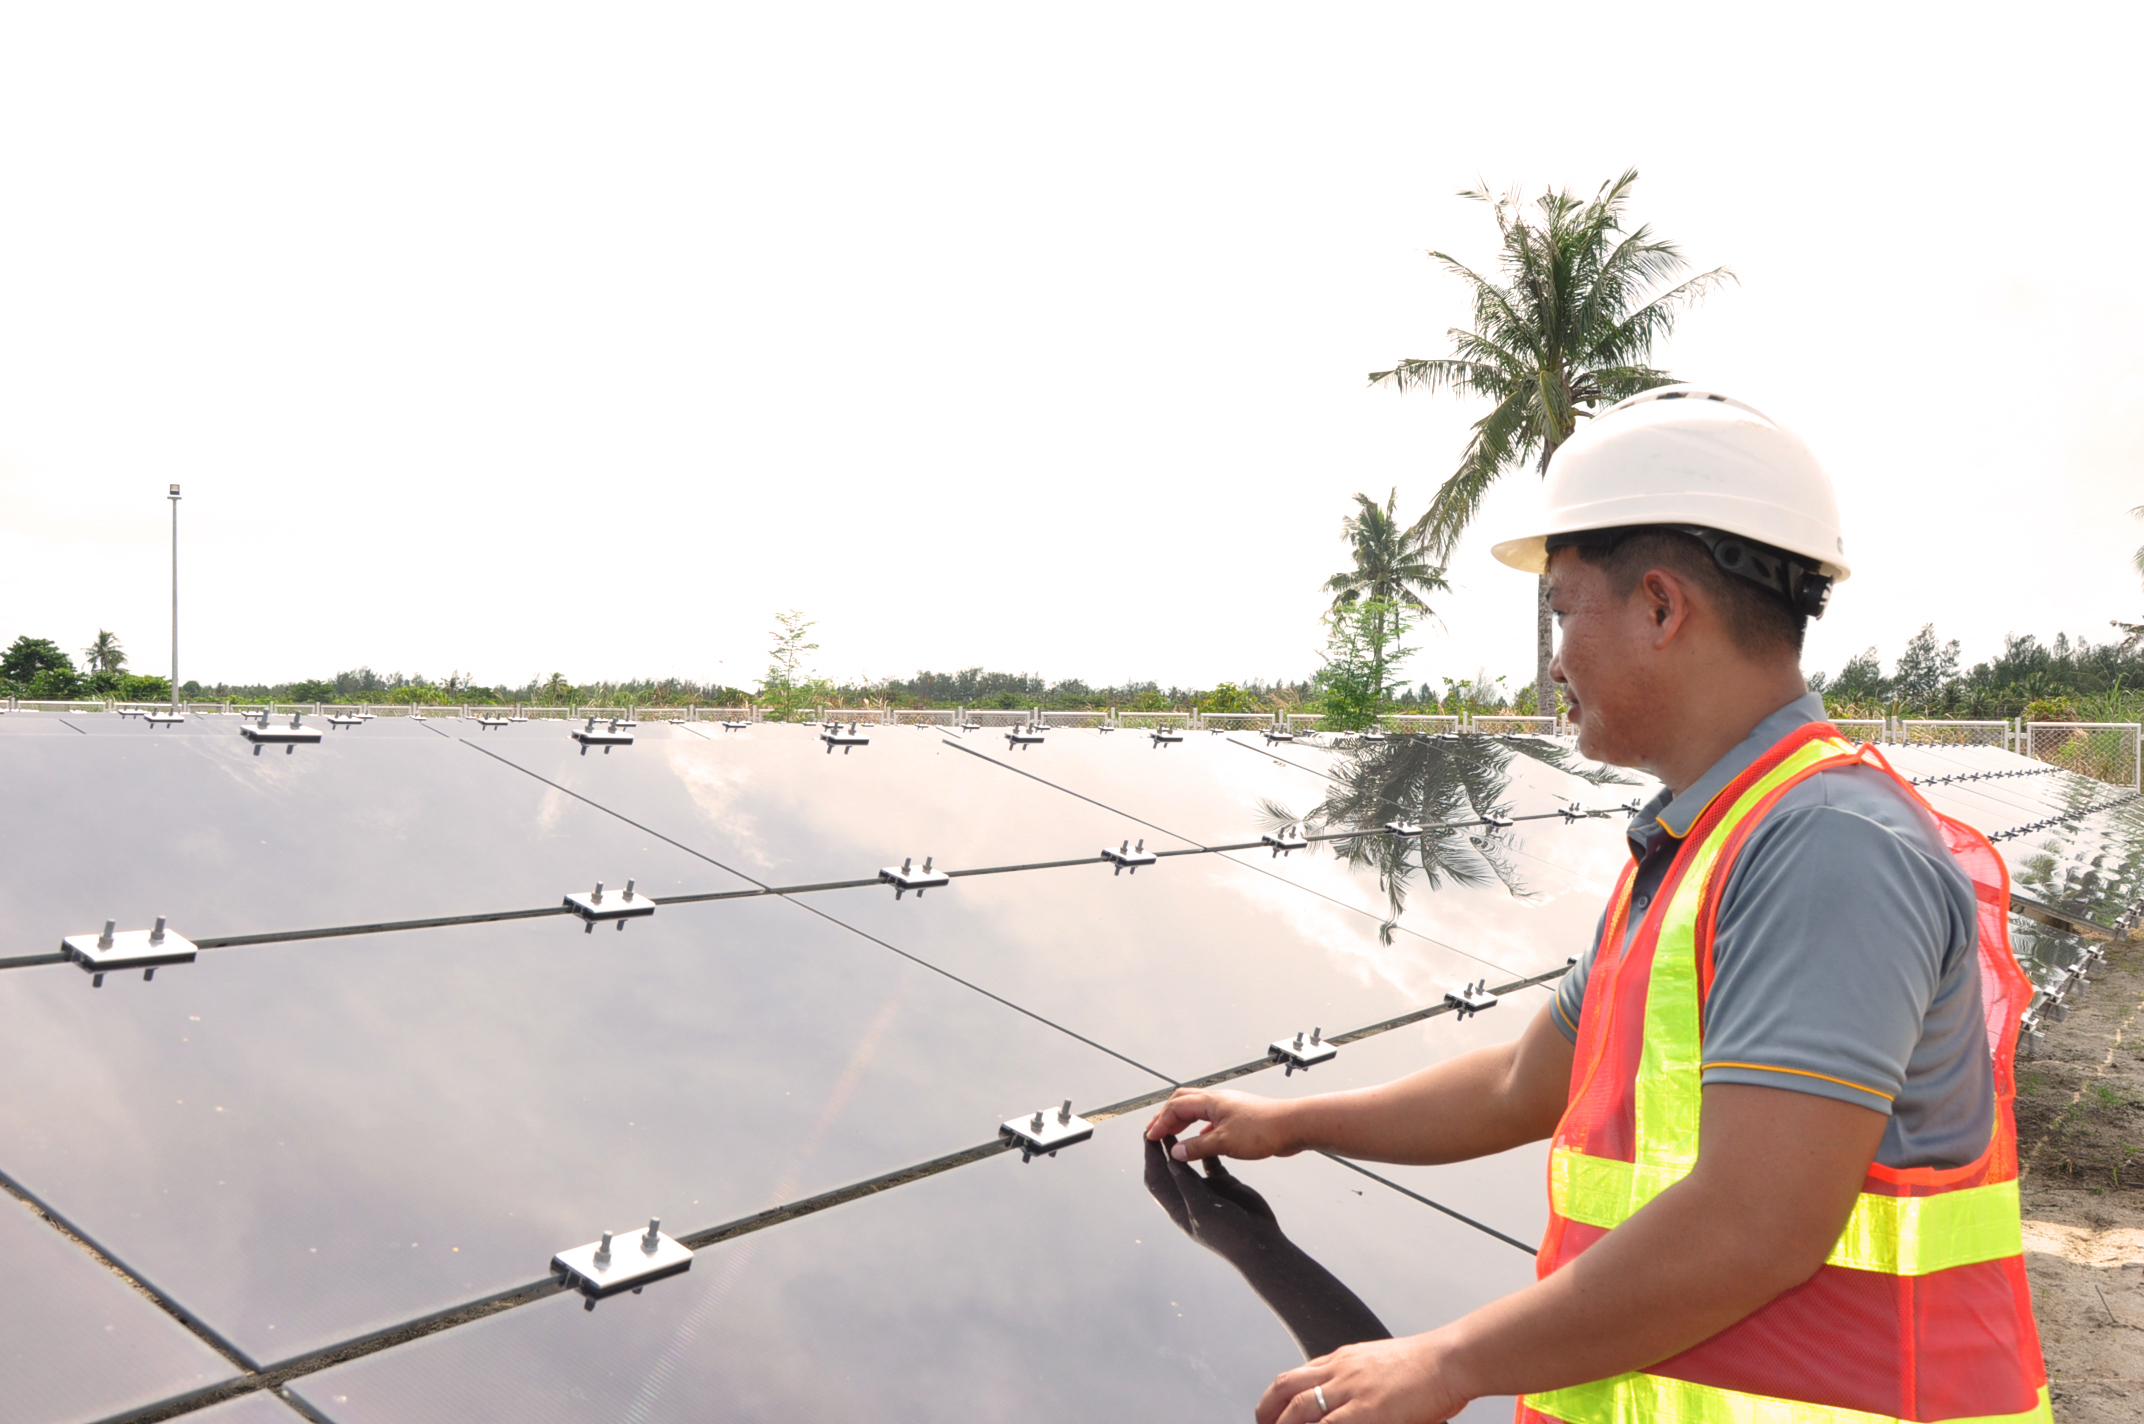 Meralco's Revitalized RE Push for Solar Microgrids